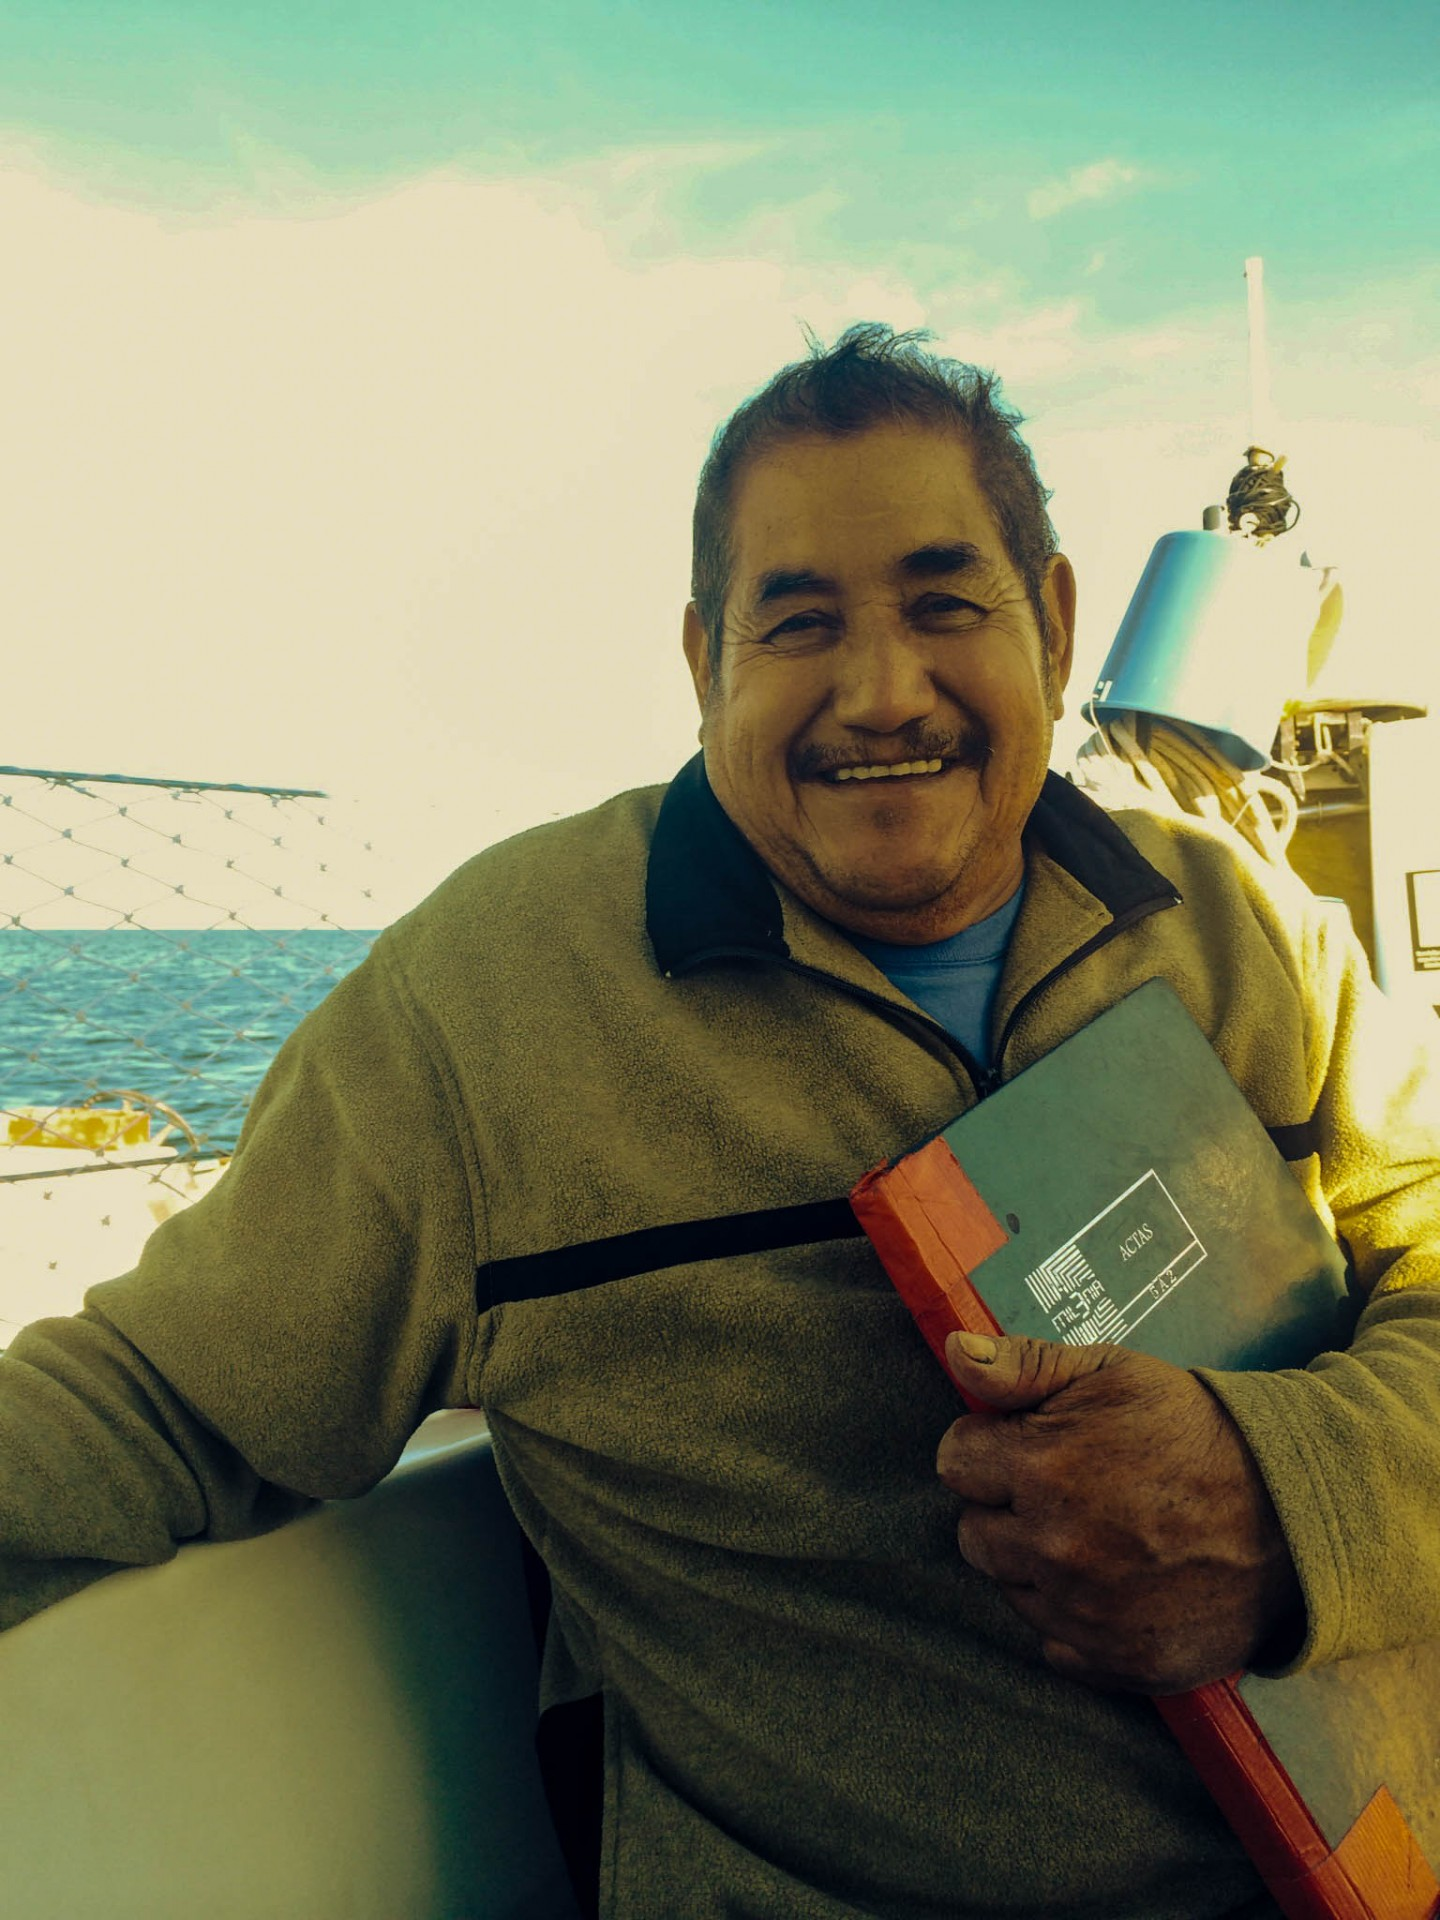 Eduardo made it easy for us to refuel in Puerto Magdalena; that's his ledger book in hand. He never opened up or thought about the change I was asking about, but missed his childhod home in La Paz.